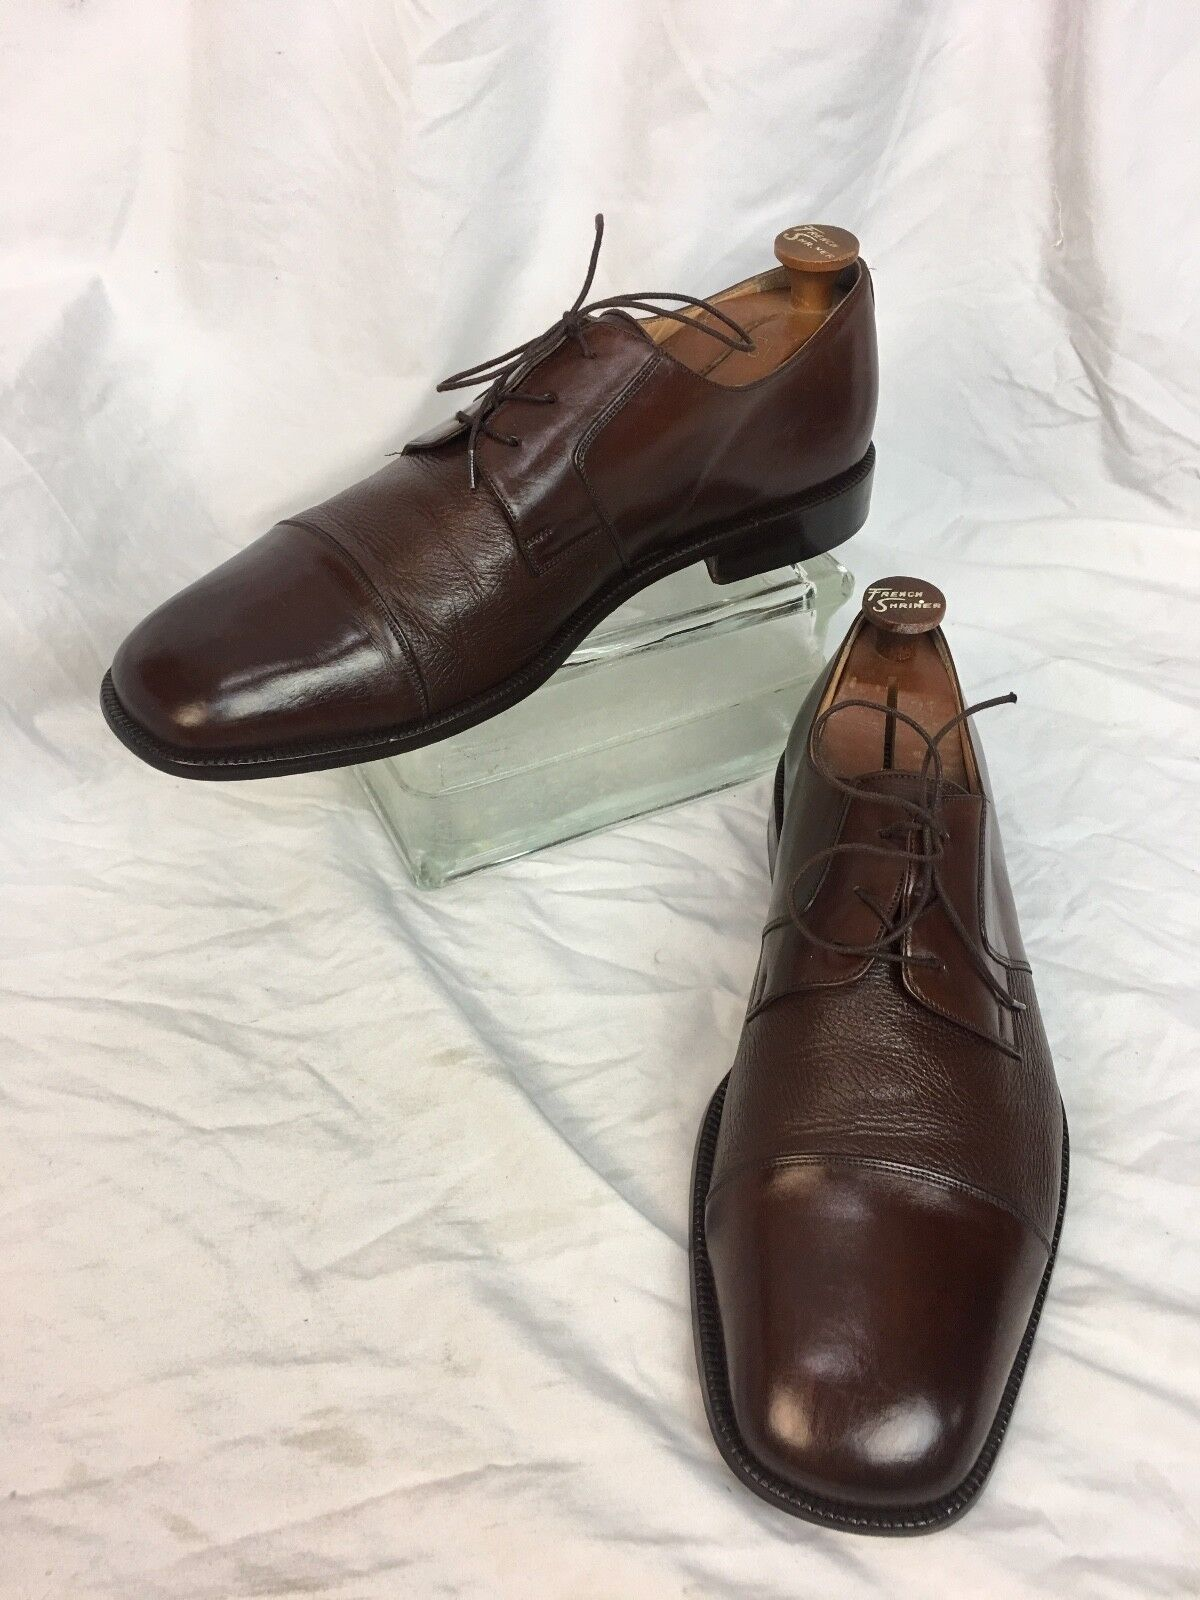 * Zillioni * Oxford Cap Toe Brown Shoes Sz 13 US 46 EUR Made in Italy STUNNING!